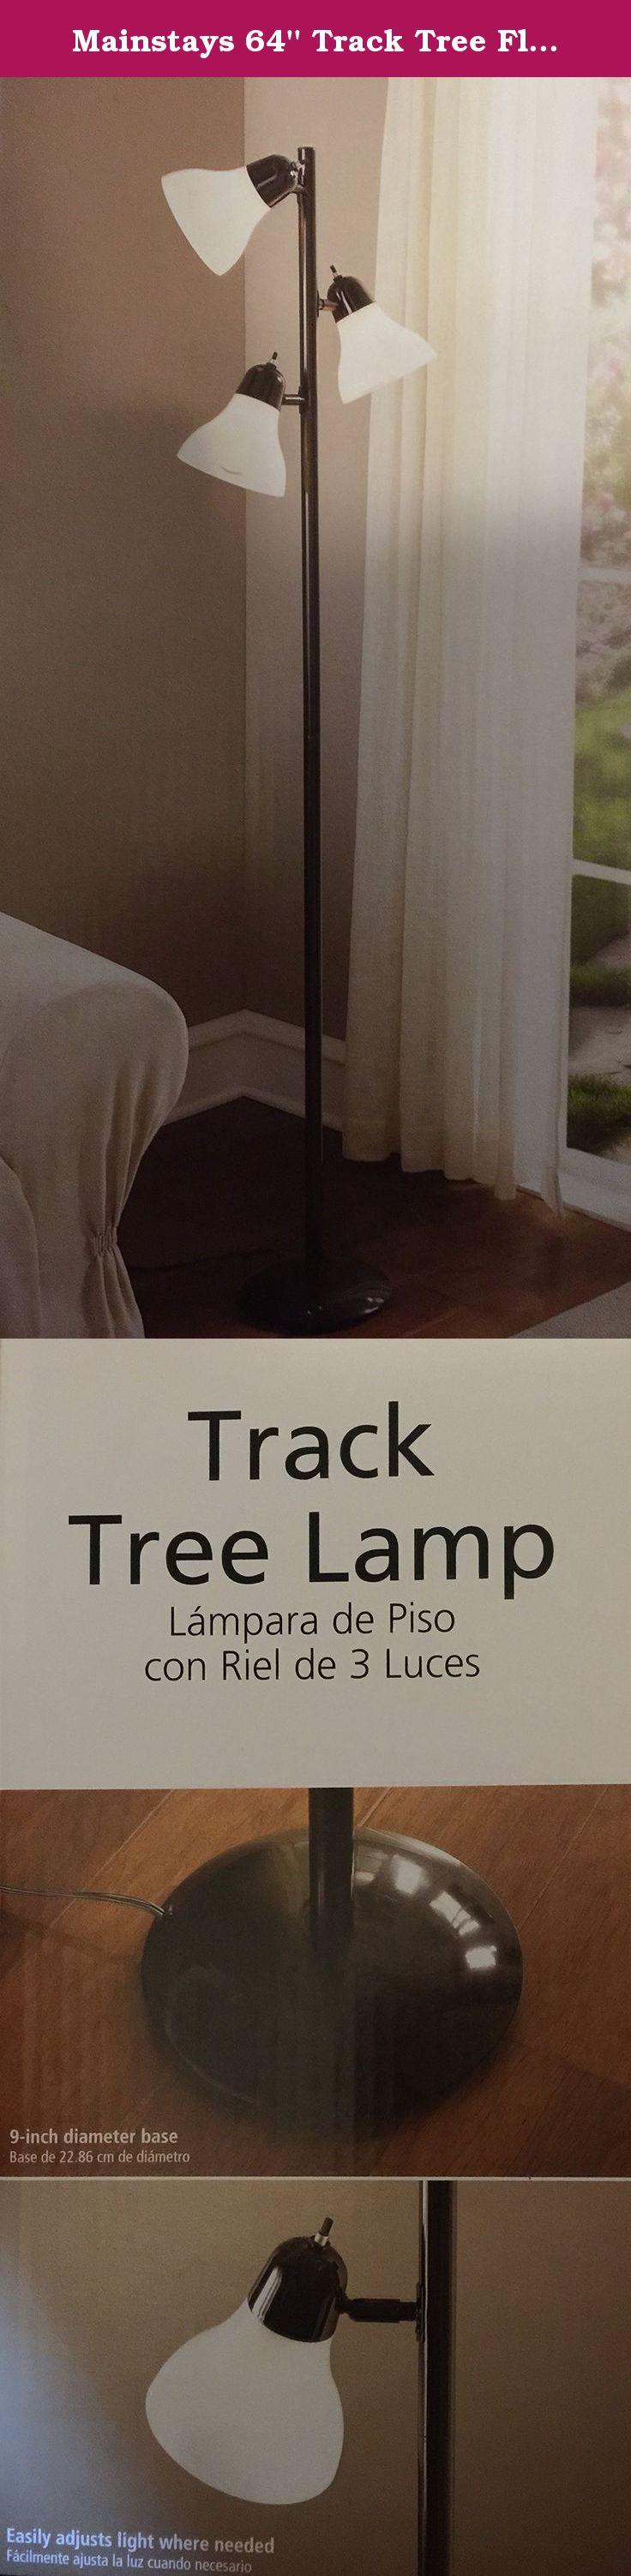 Mainstays 64 Track Tree Floor Lamp Black Painted Finish Home Has Plastic Shades On Off Switch Each Light Three